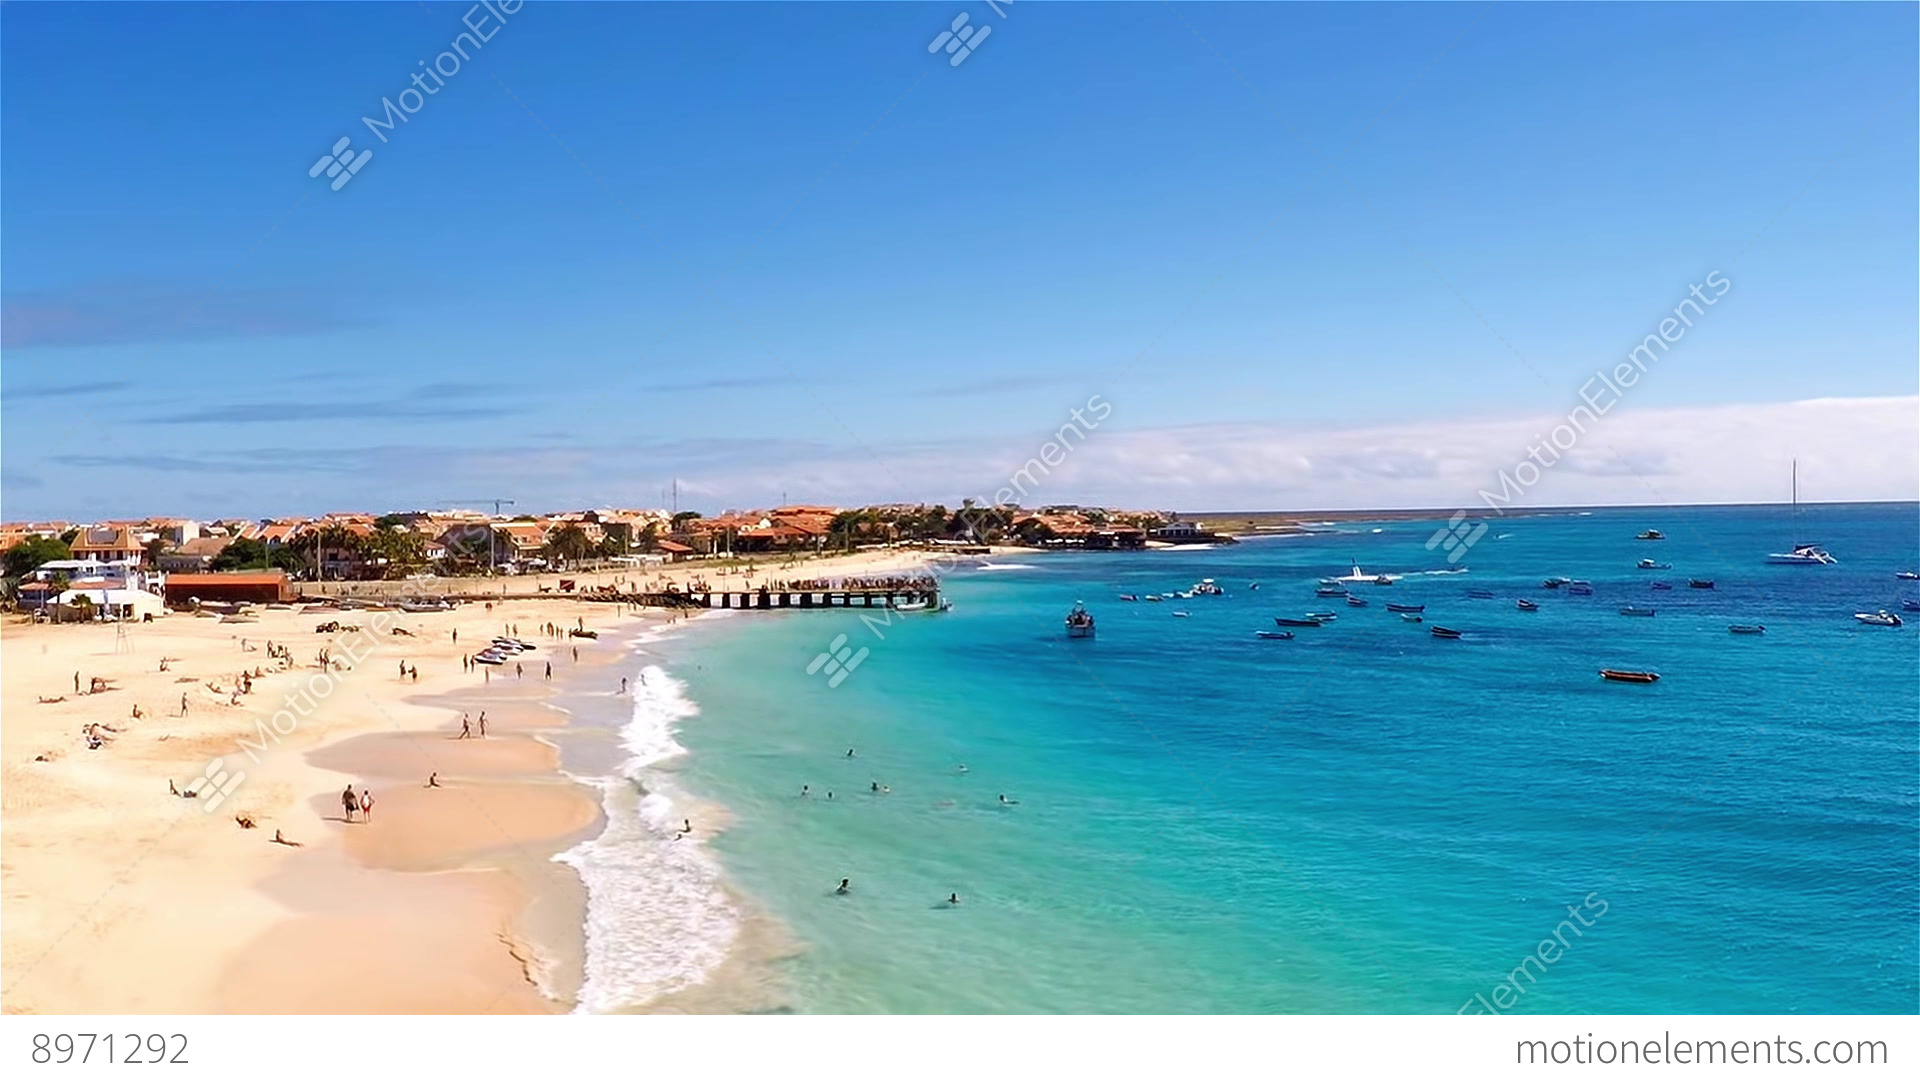 the influence of globalization on cabo verdes food supply aspects 17 august 1945 in the sparkling  days submerged on the schnorchel from europe to the cape verdes was a fiction calculated to place him  all aspects of the new.